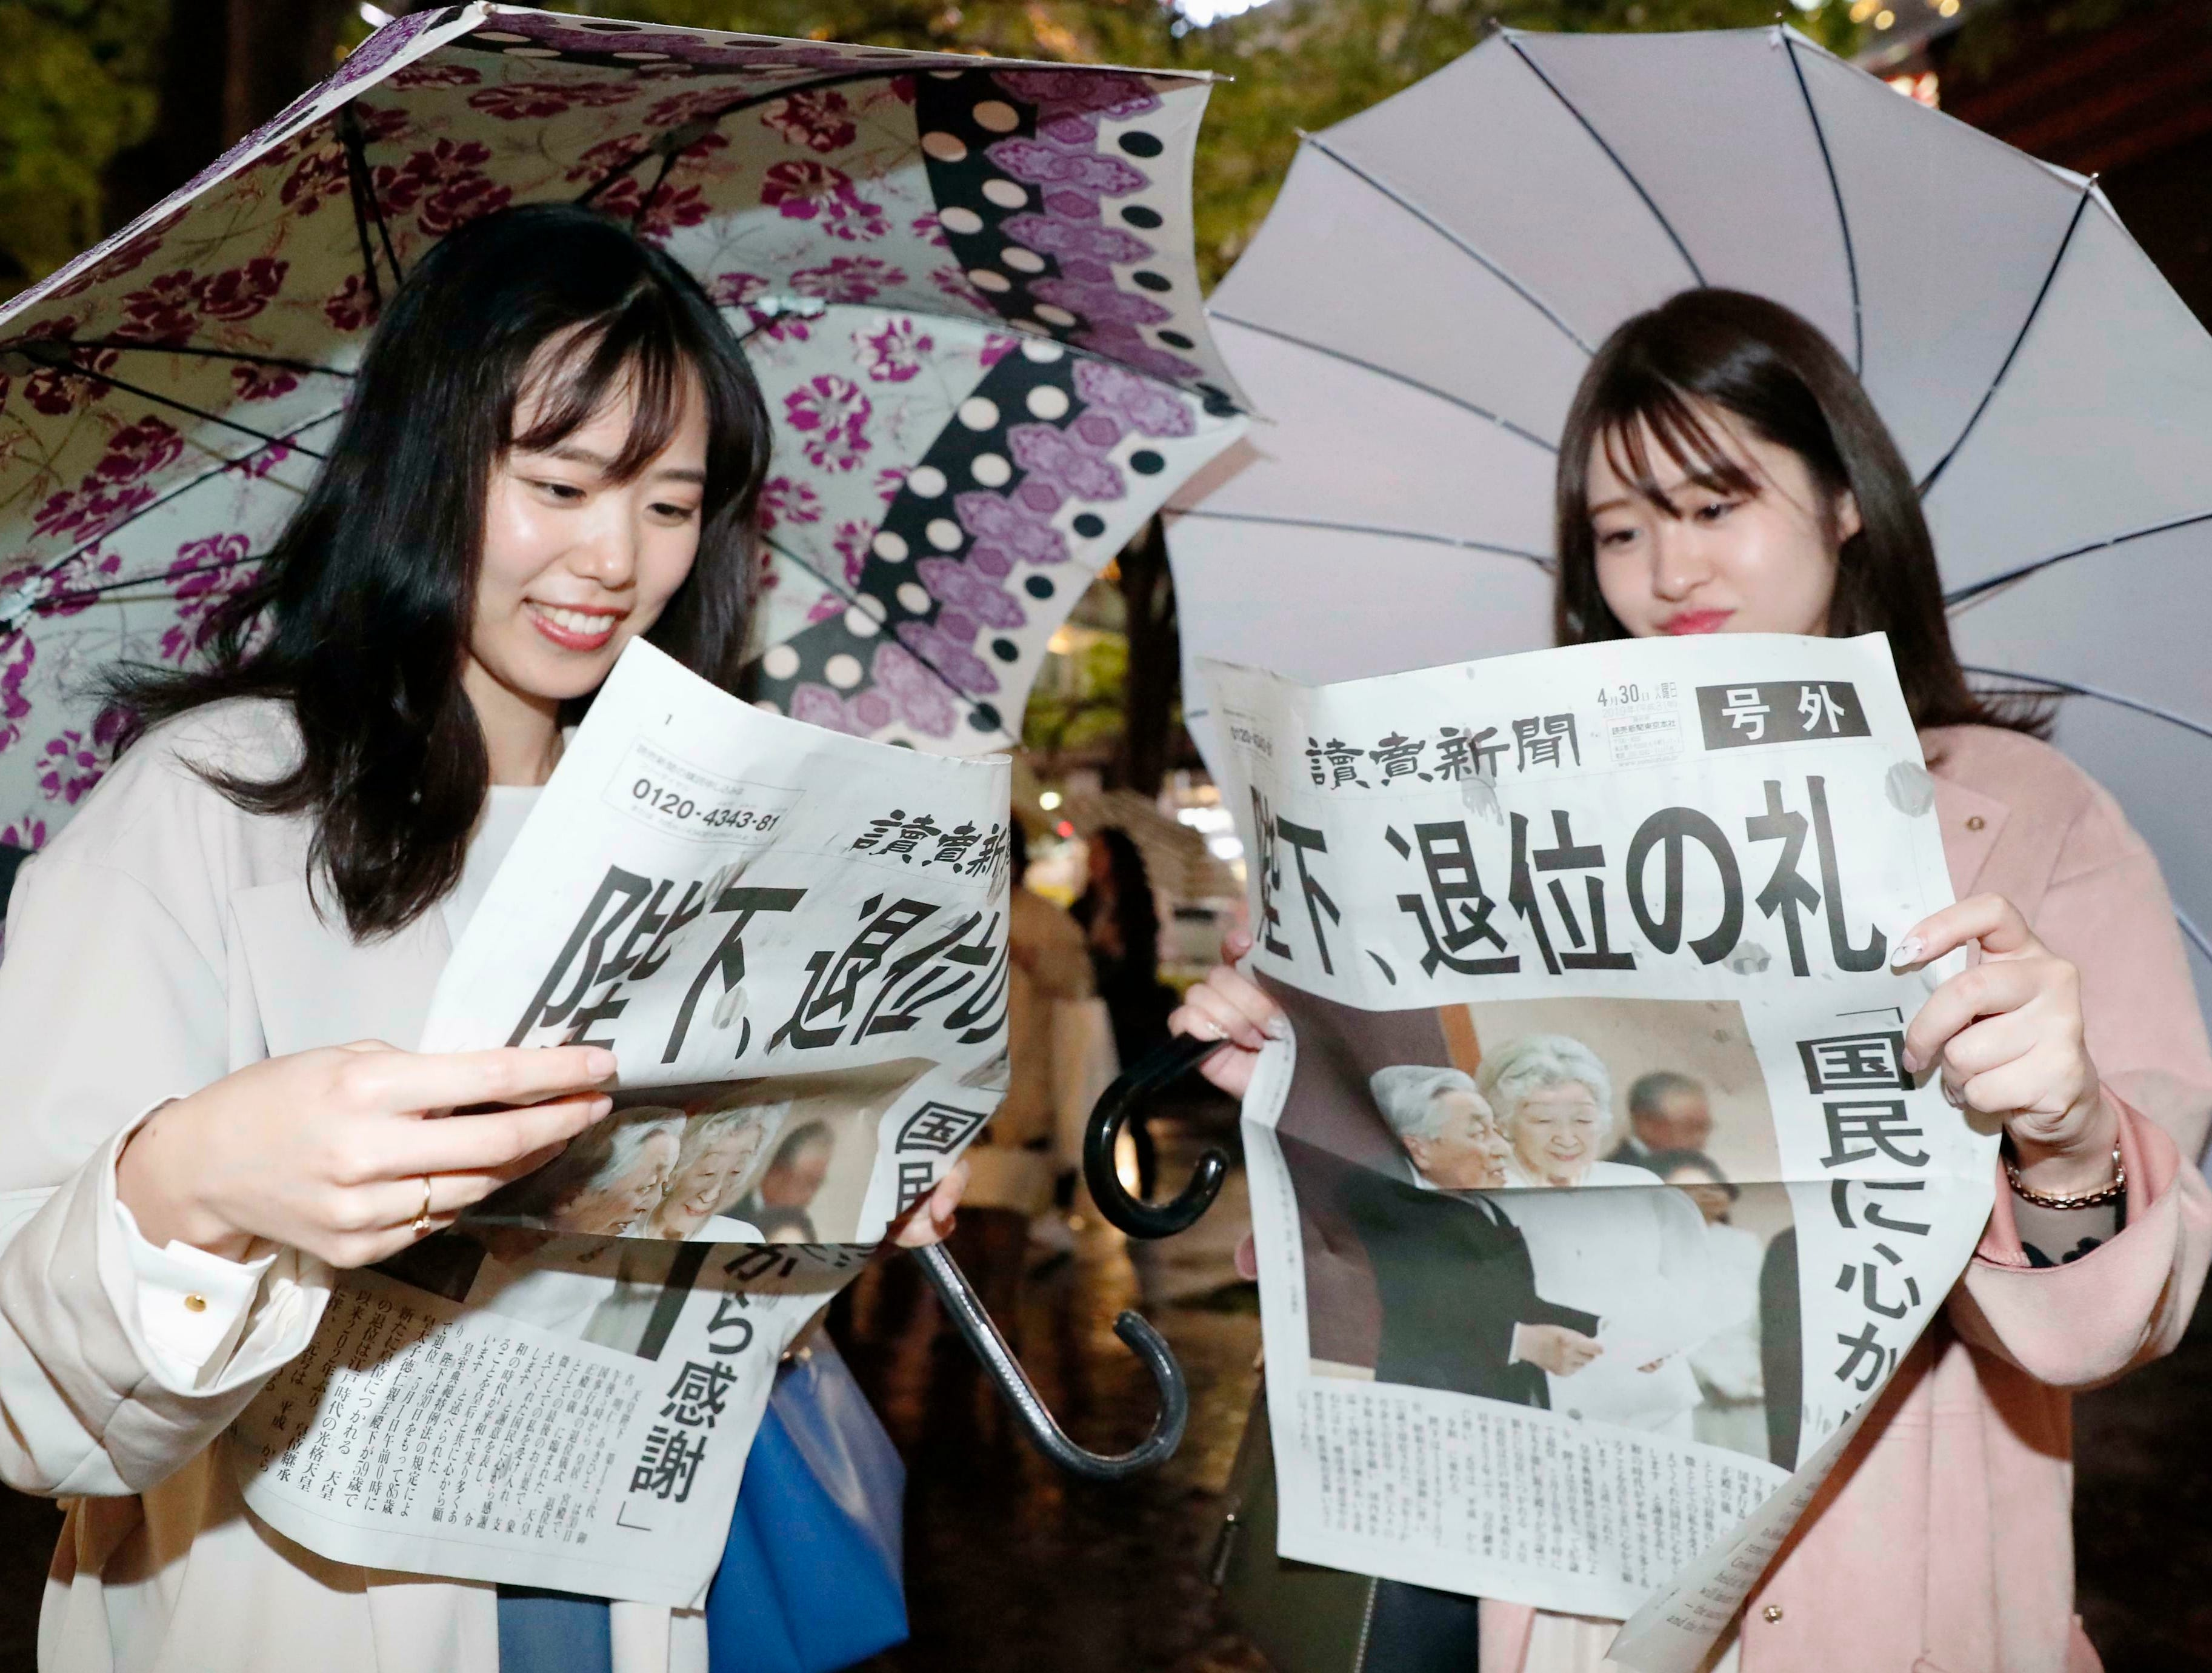 """Women read a copy of the extra edition of Yomiuri Shimbun newspaper reporting Emperor Akihito's abdication in Tokyo Tuesday, April 30, 2019.  The emperor made the announcement at a palace ceremony Tuesday in his final address, as the nation embraced the end of his reign with reminiscence and hope for a new era. The headline reads """"Emperor, abdication ritual."""""""